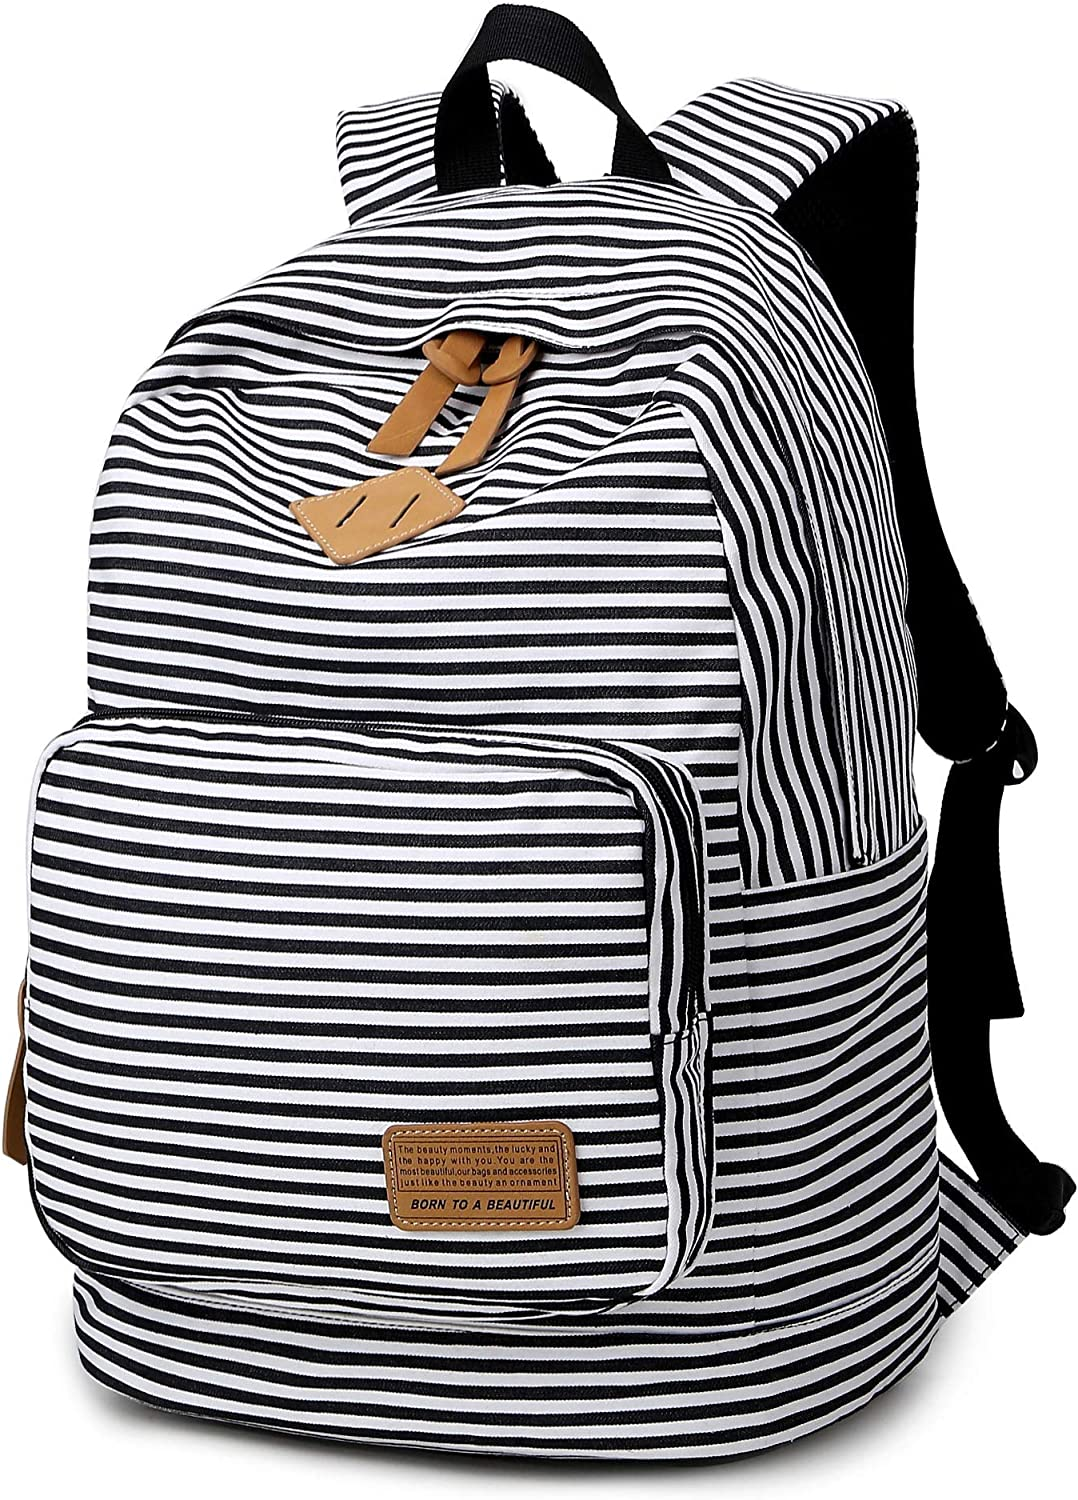 Ahyapiner Striped Canvas Backpack Girls School Bag Women Casual Travel Daypack